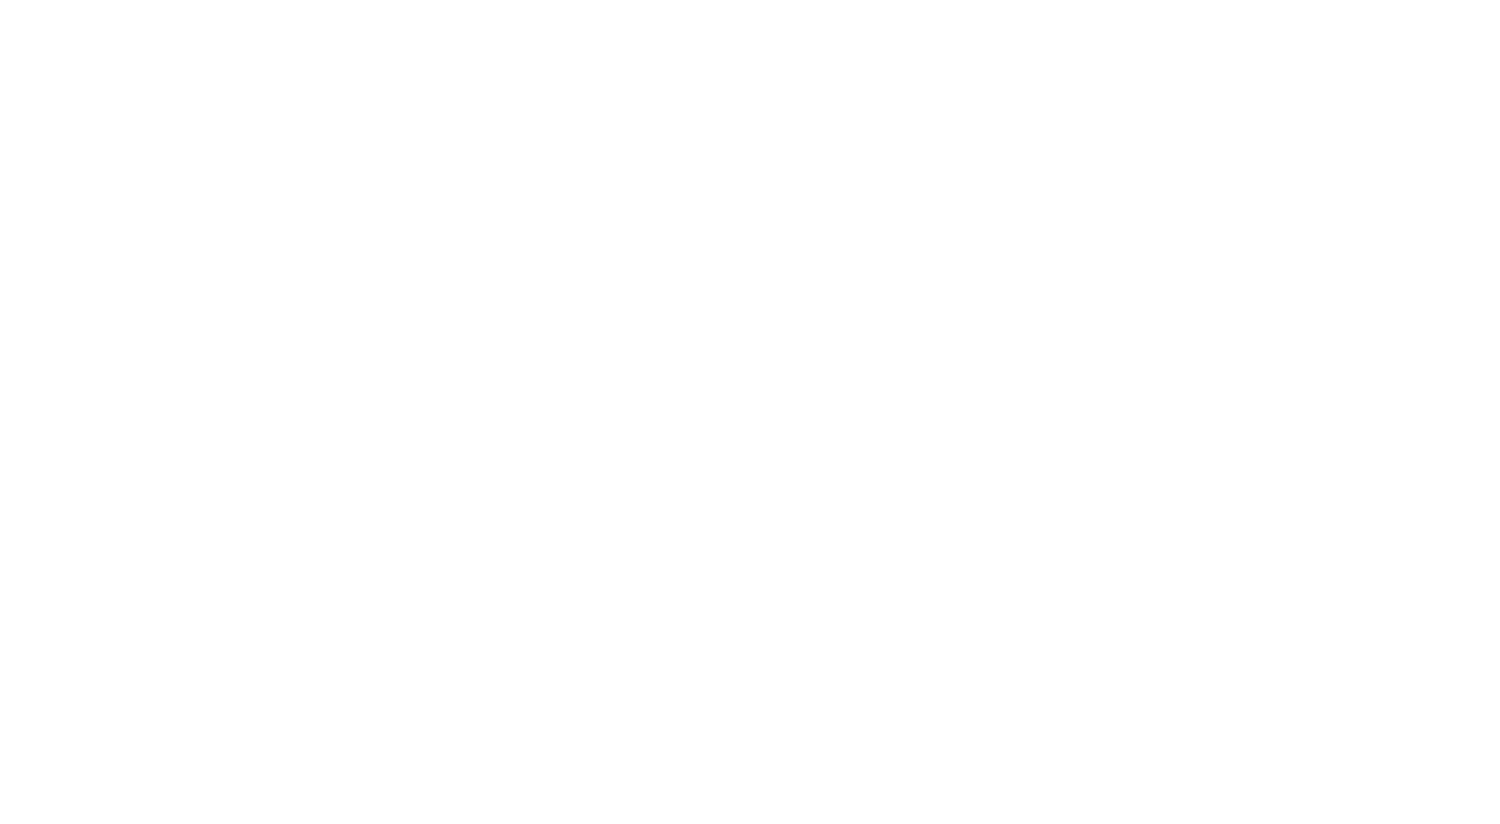 The Camp Cinema